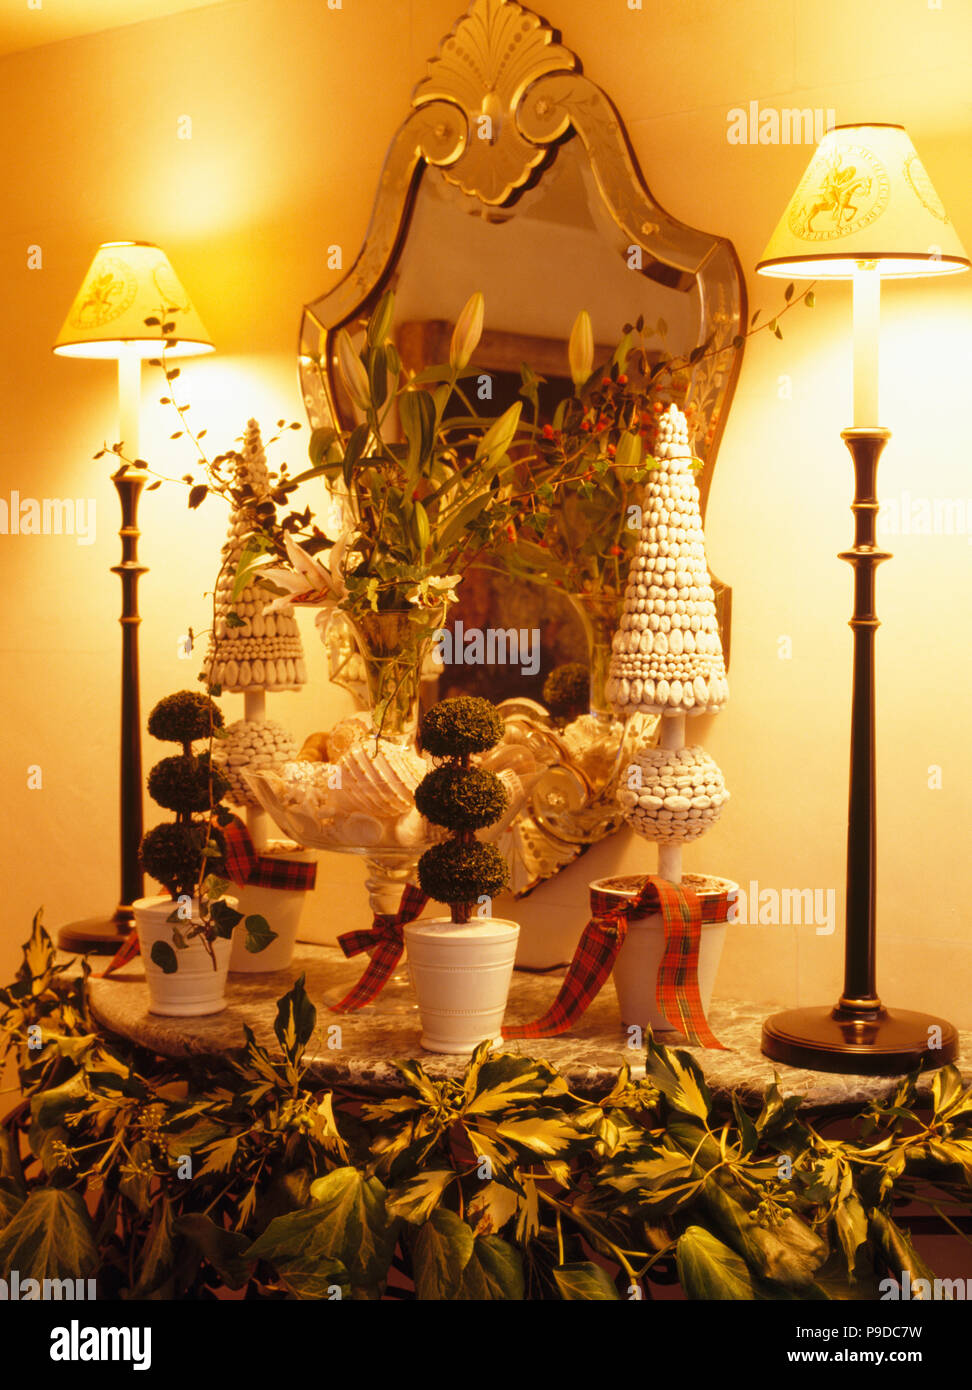 Mirror On Wall Above Shelf With Tall Lighted Lamps And Faux Topiary Trees Stock Photo Alamy